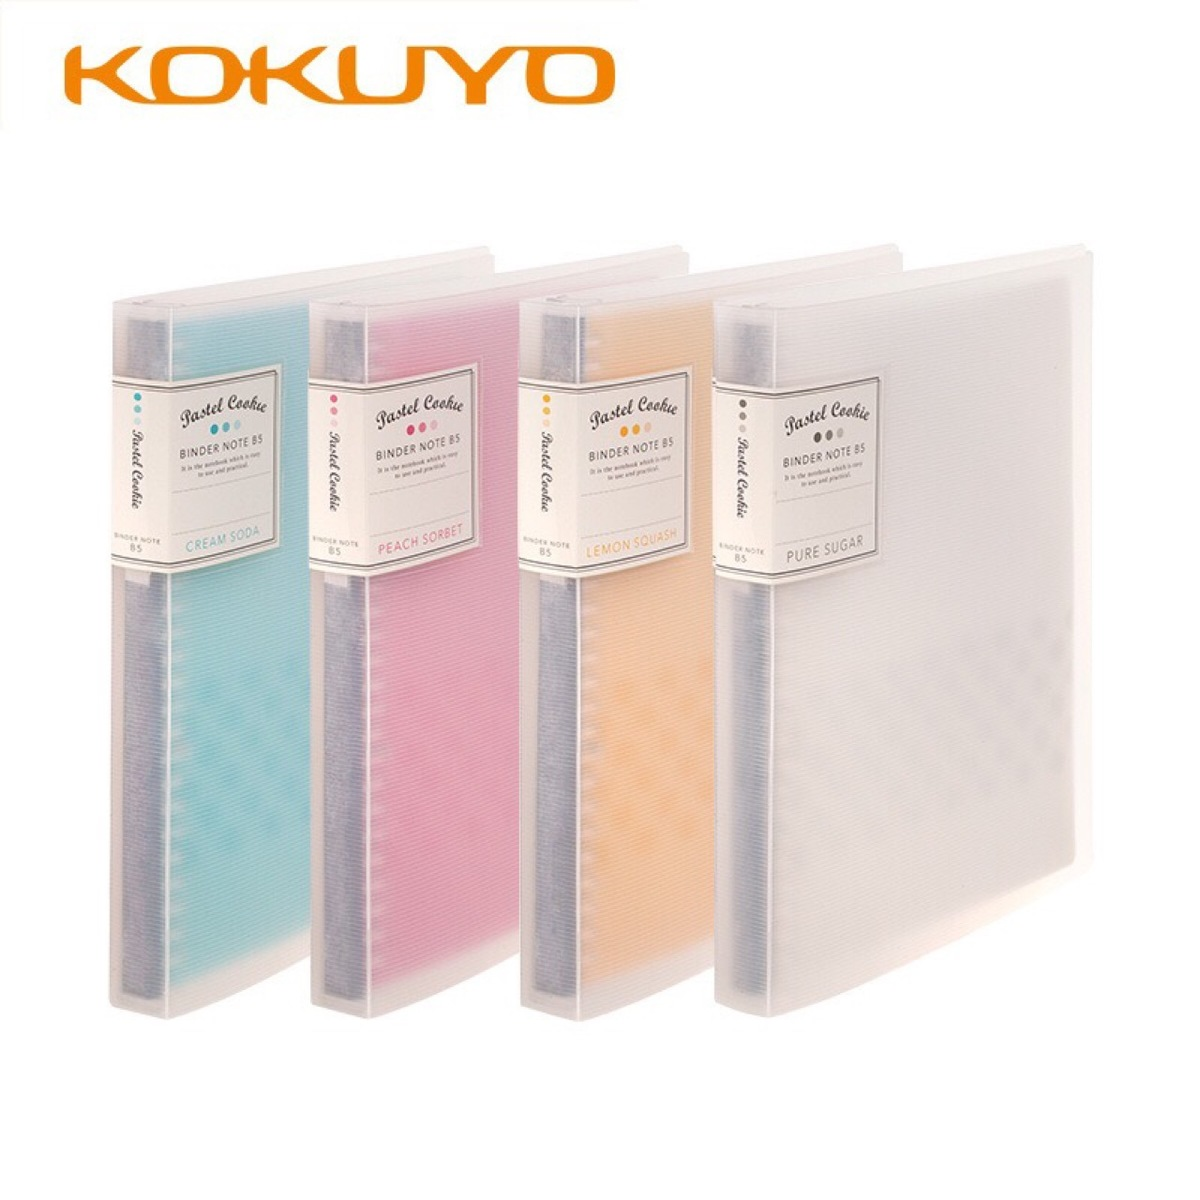 KOKUYO A5 B5 Removable Loose Leaf Notebook Refill Spiral Binder Planner Inner Page Inside Paper Dairy Weekly Monthly Plan Line binder inner page notebook loose leaf papery separator index paper separation divider page 5 sheets matching filofax kikkik href